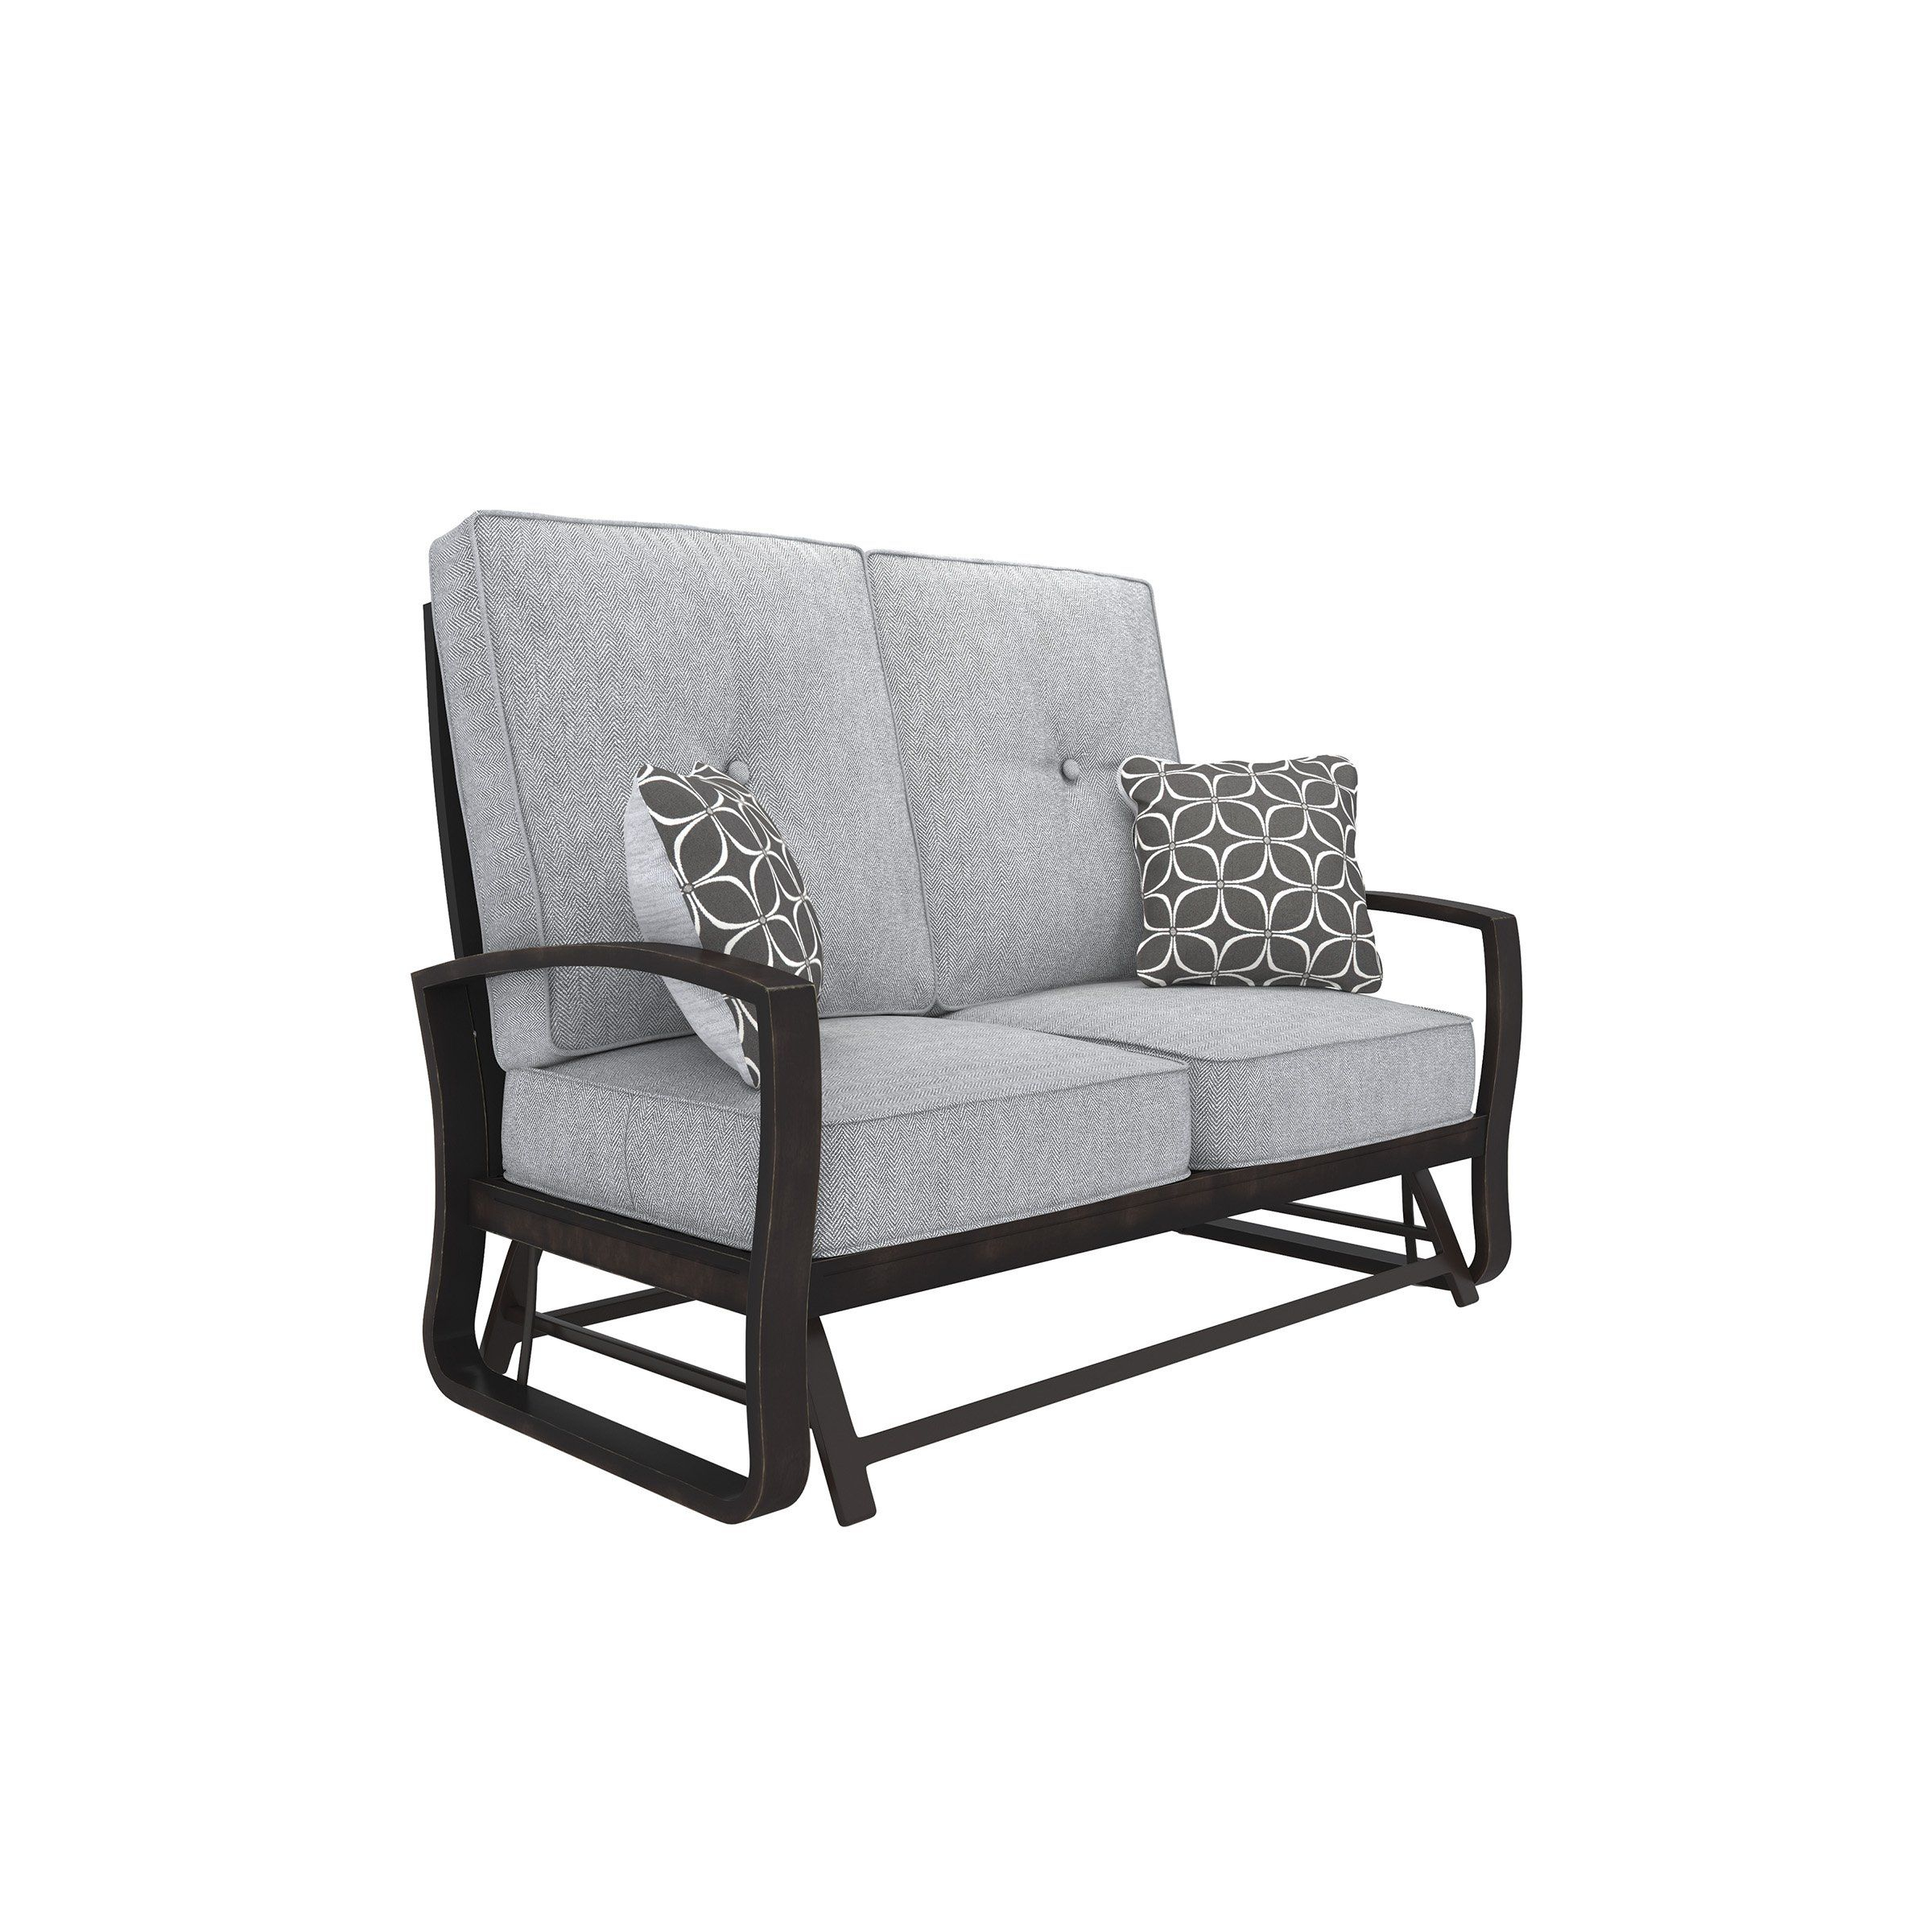 Signature Design P414 835 Castle Island Brown Gray Outdoor Pertaining To Loveseat Glider Benches With Cushions (View 2 of 25)